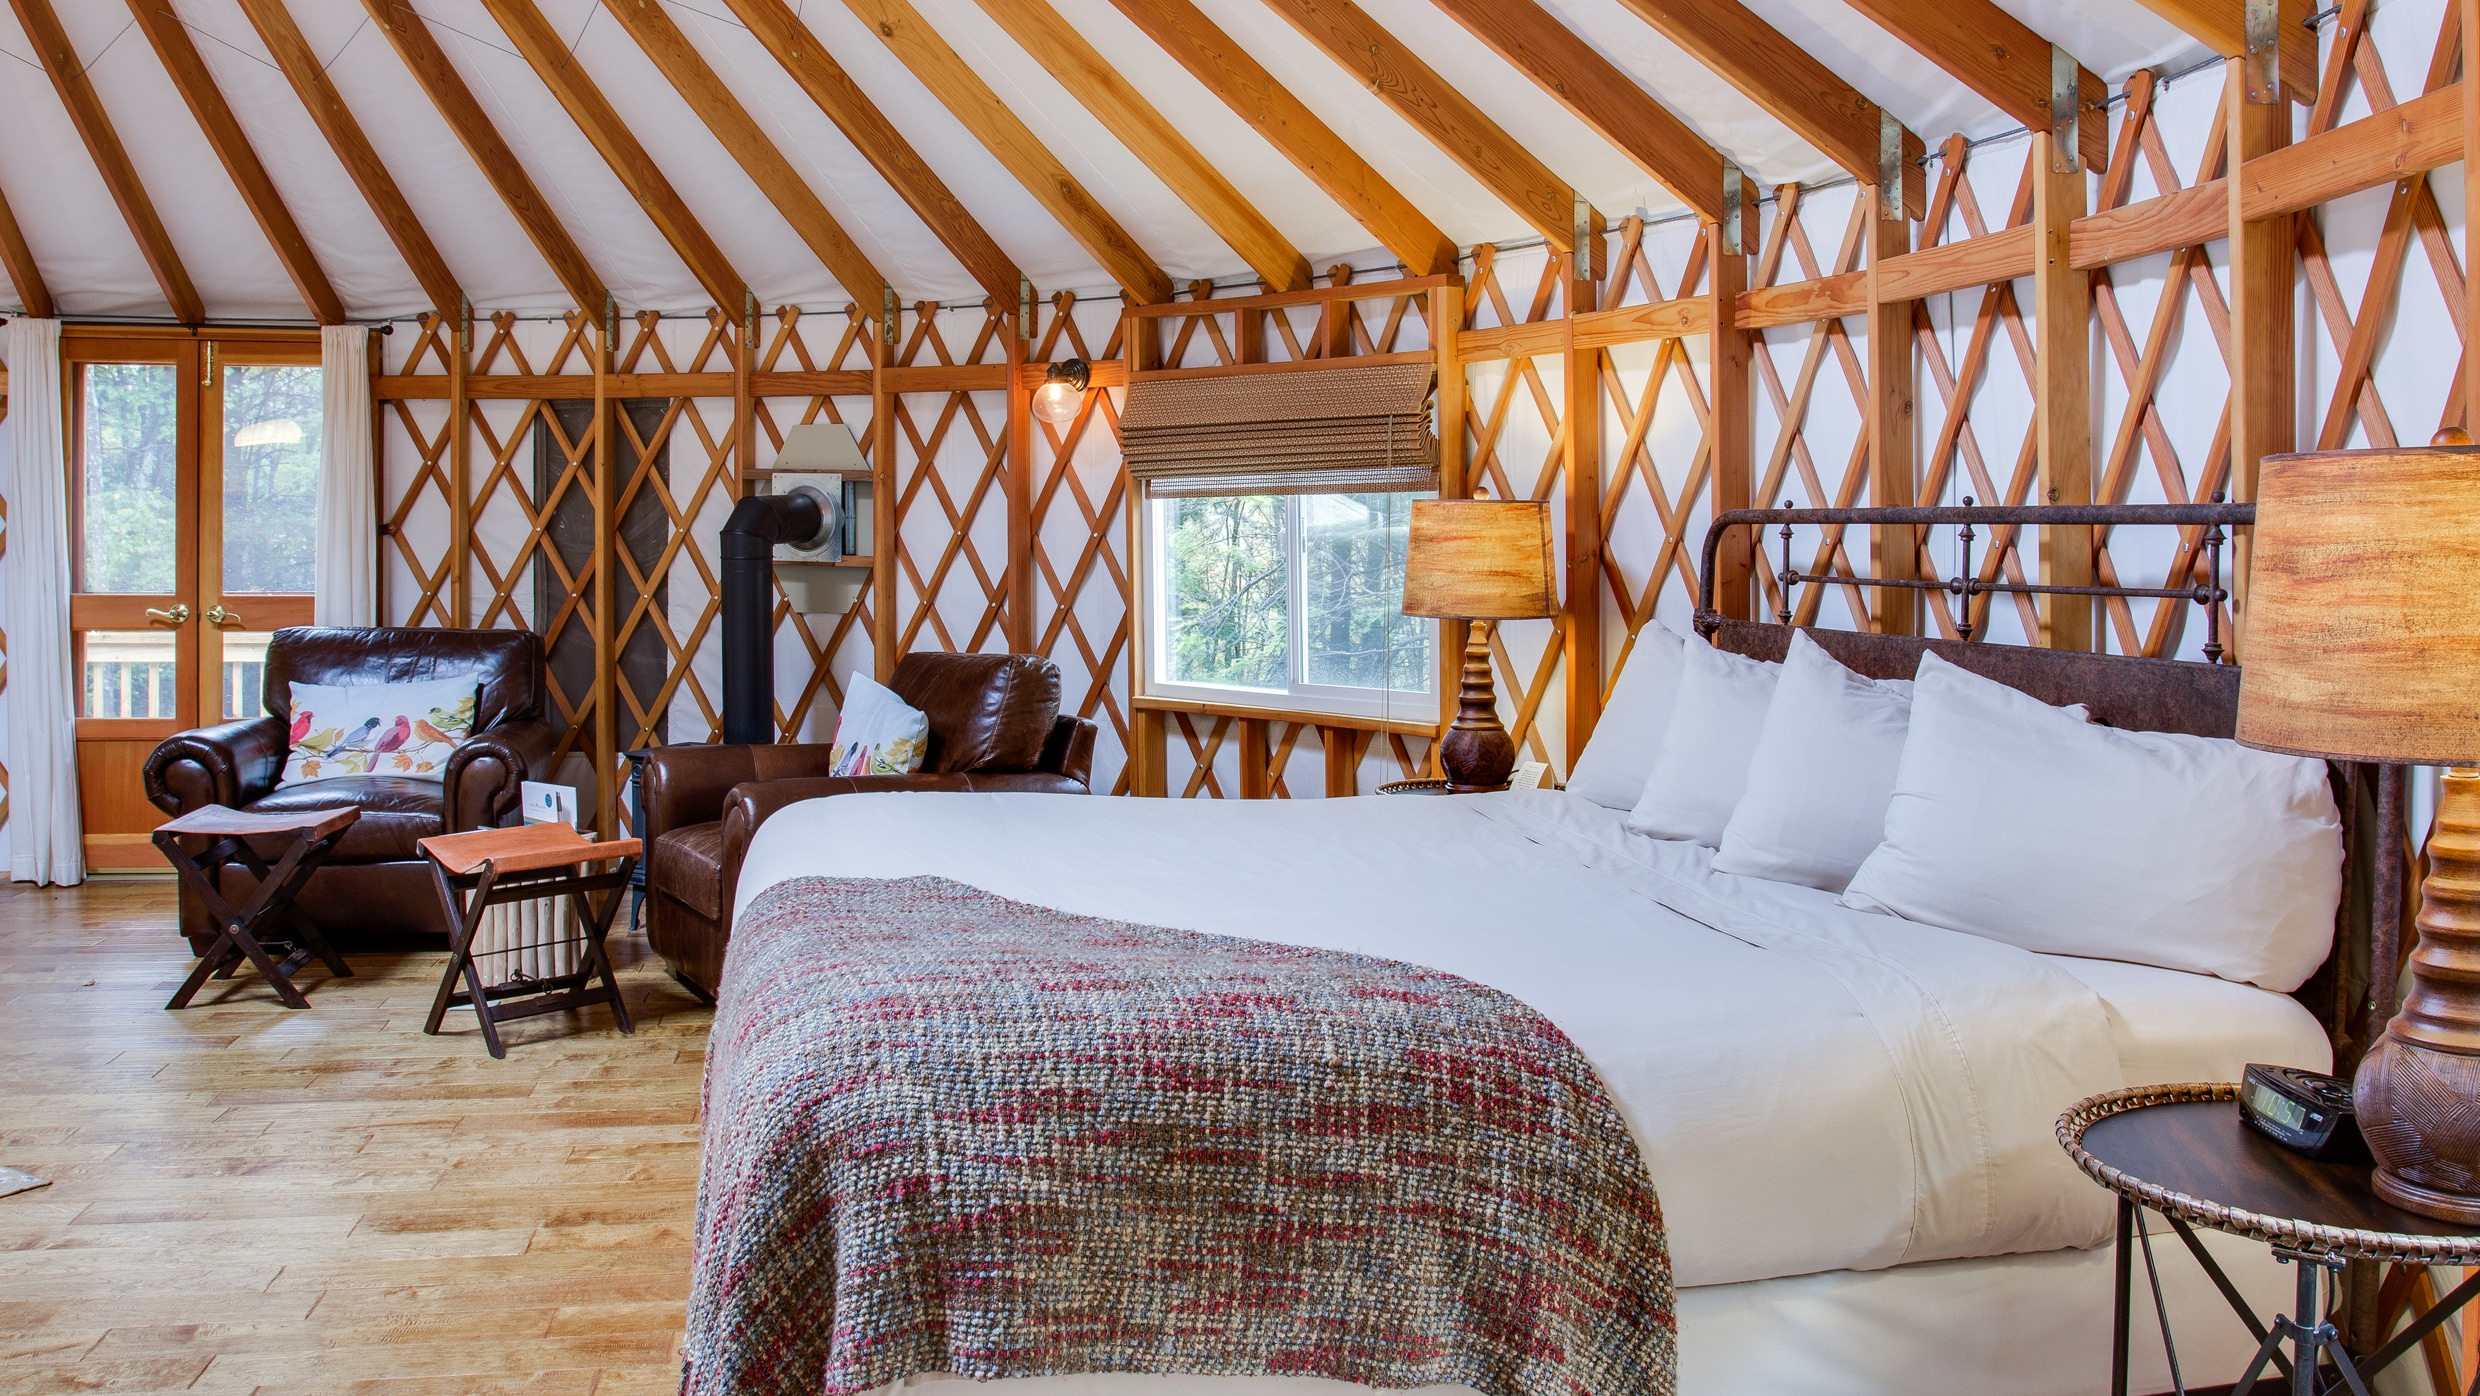 Where to go glamping like the star you are - The Washington Post